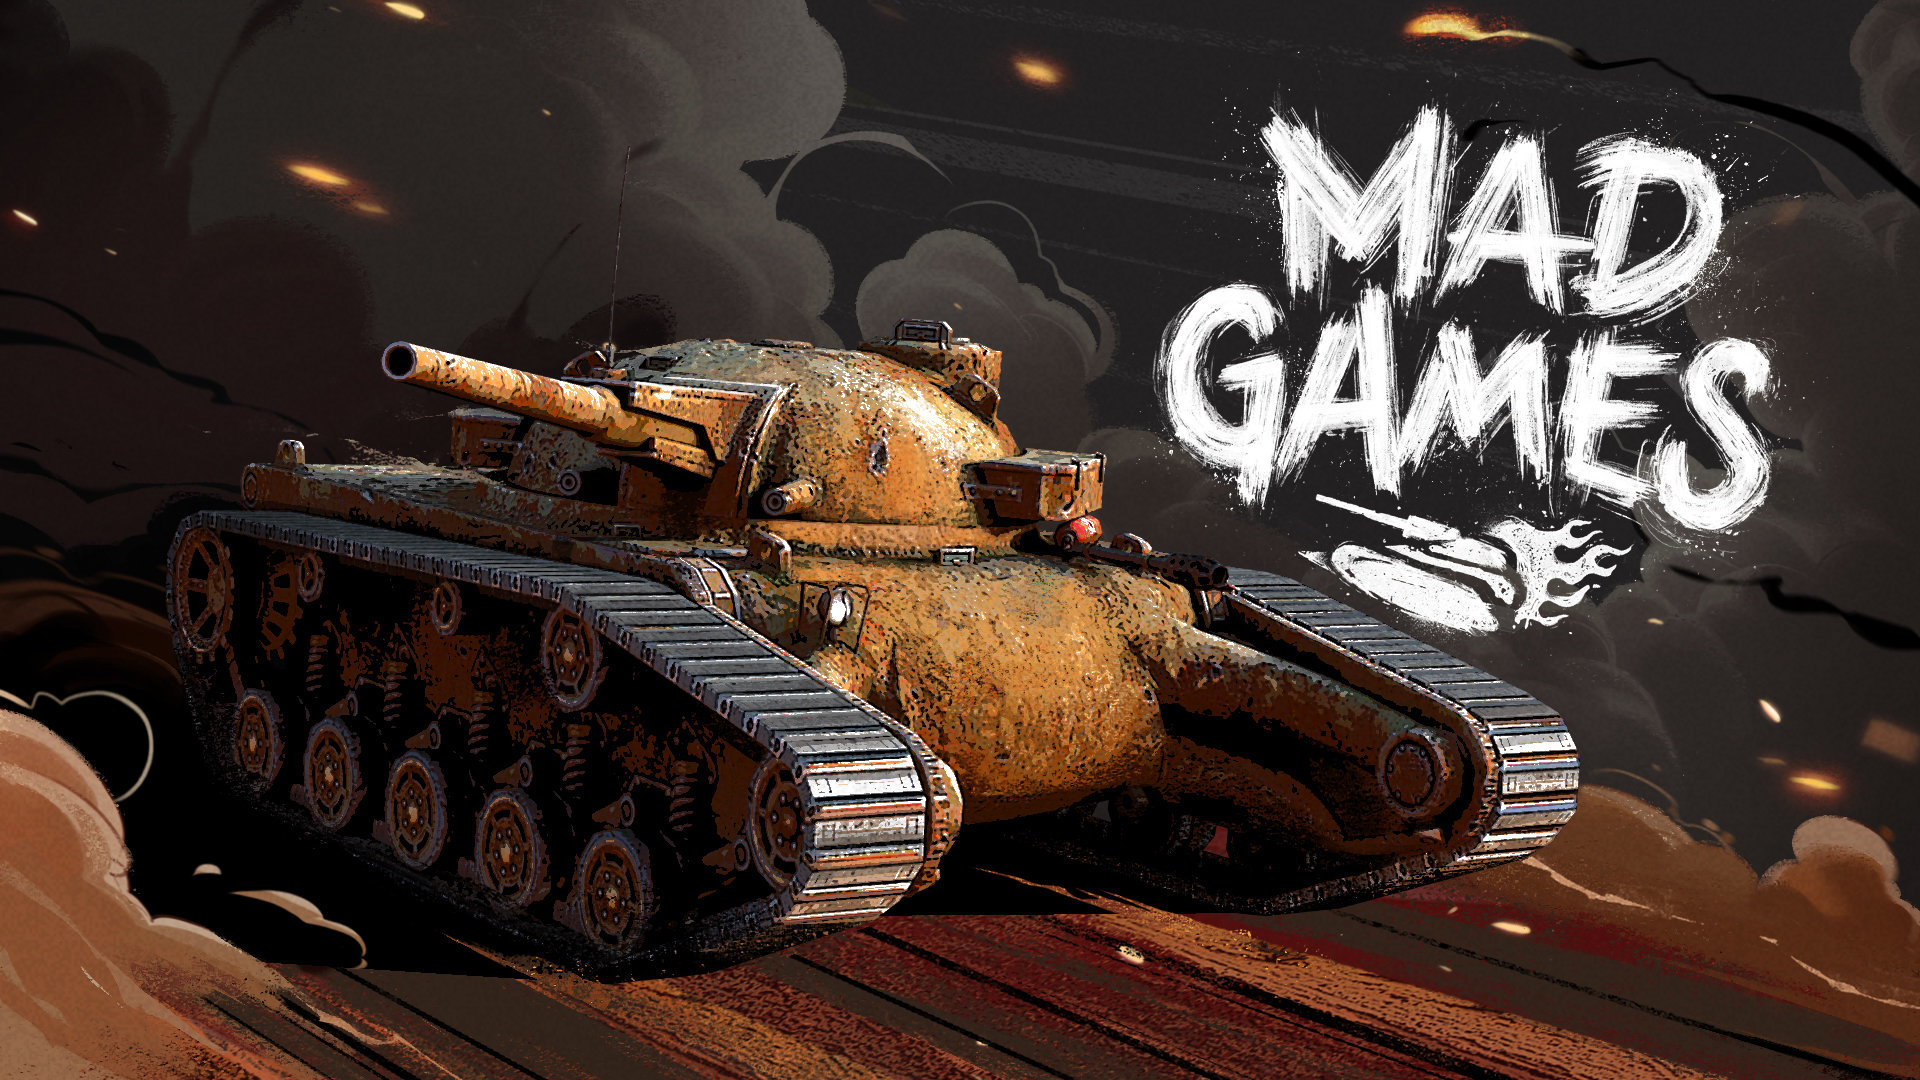 Mad Max: Fury Road artist makes two tanks for WoT Blitz